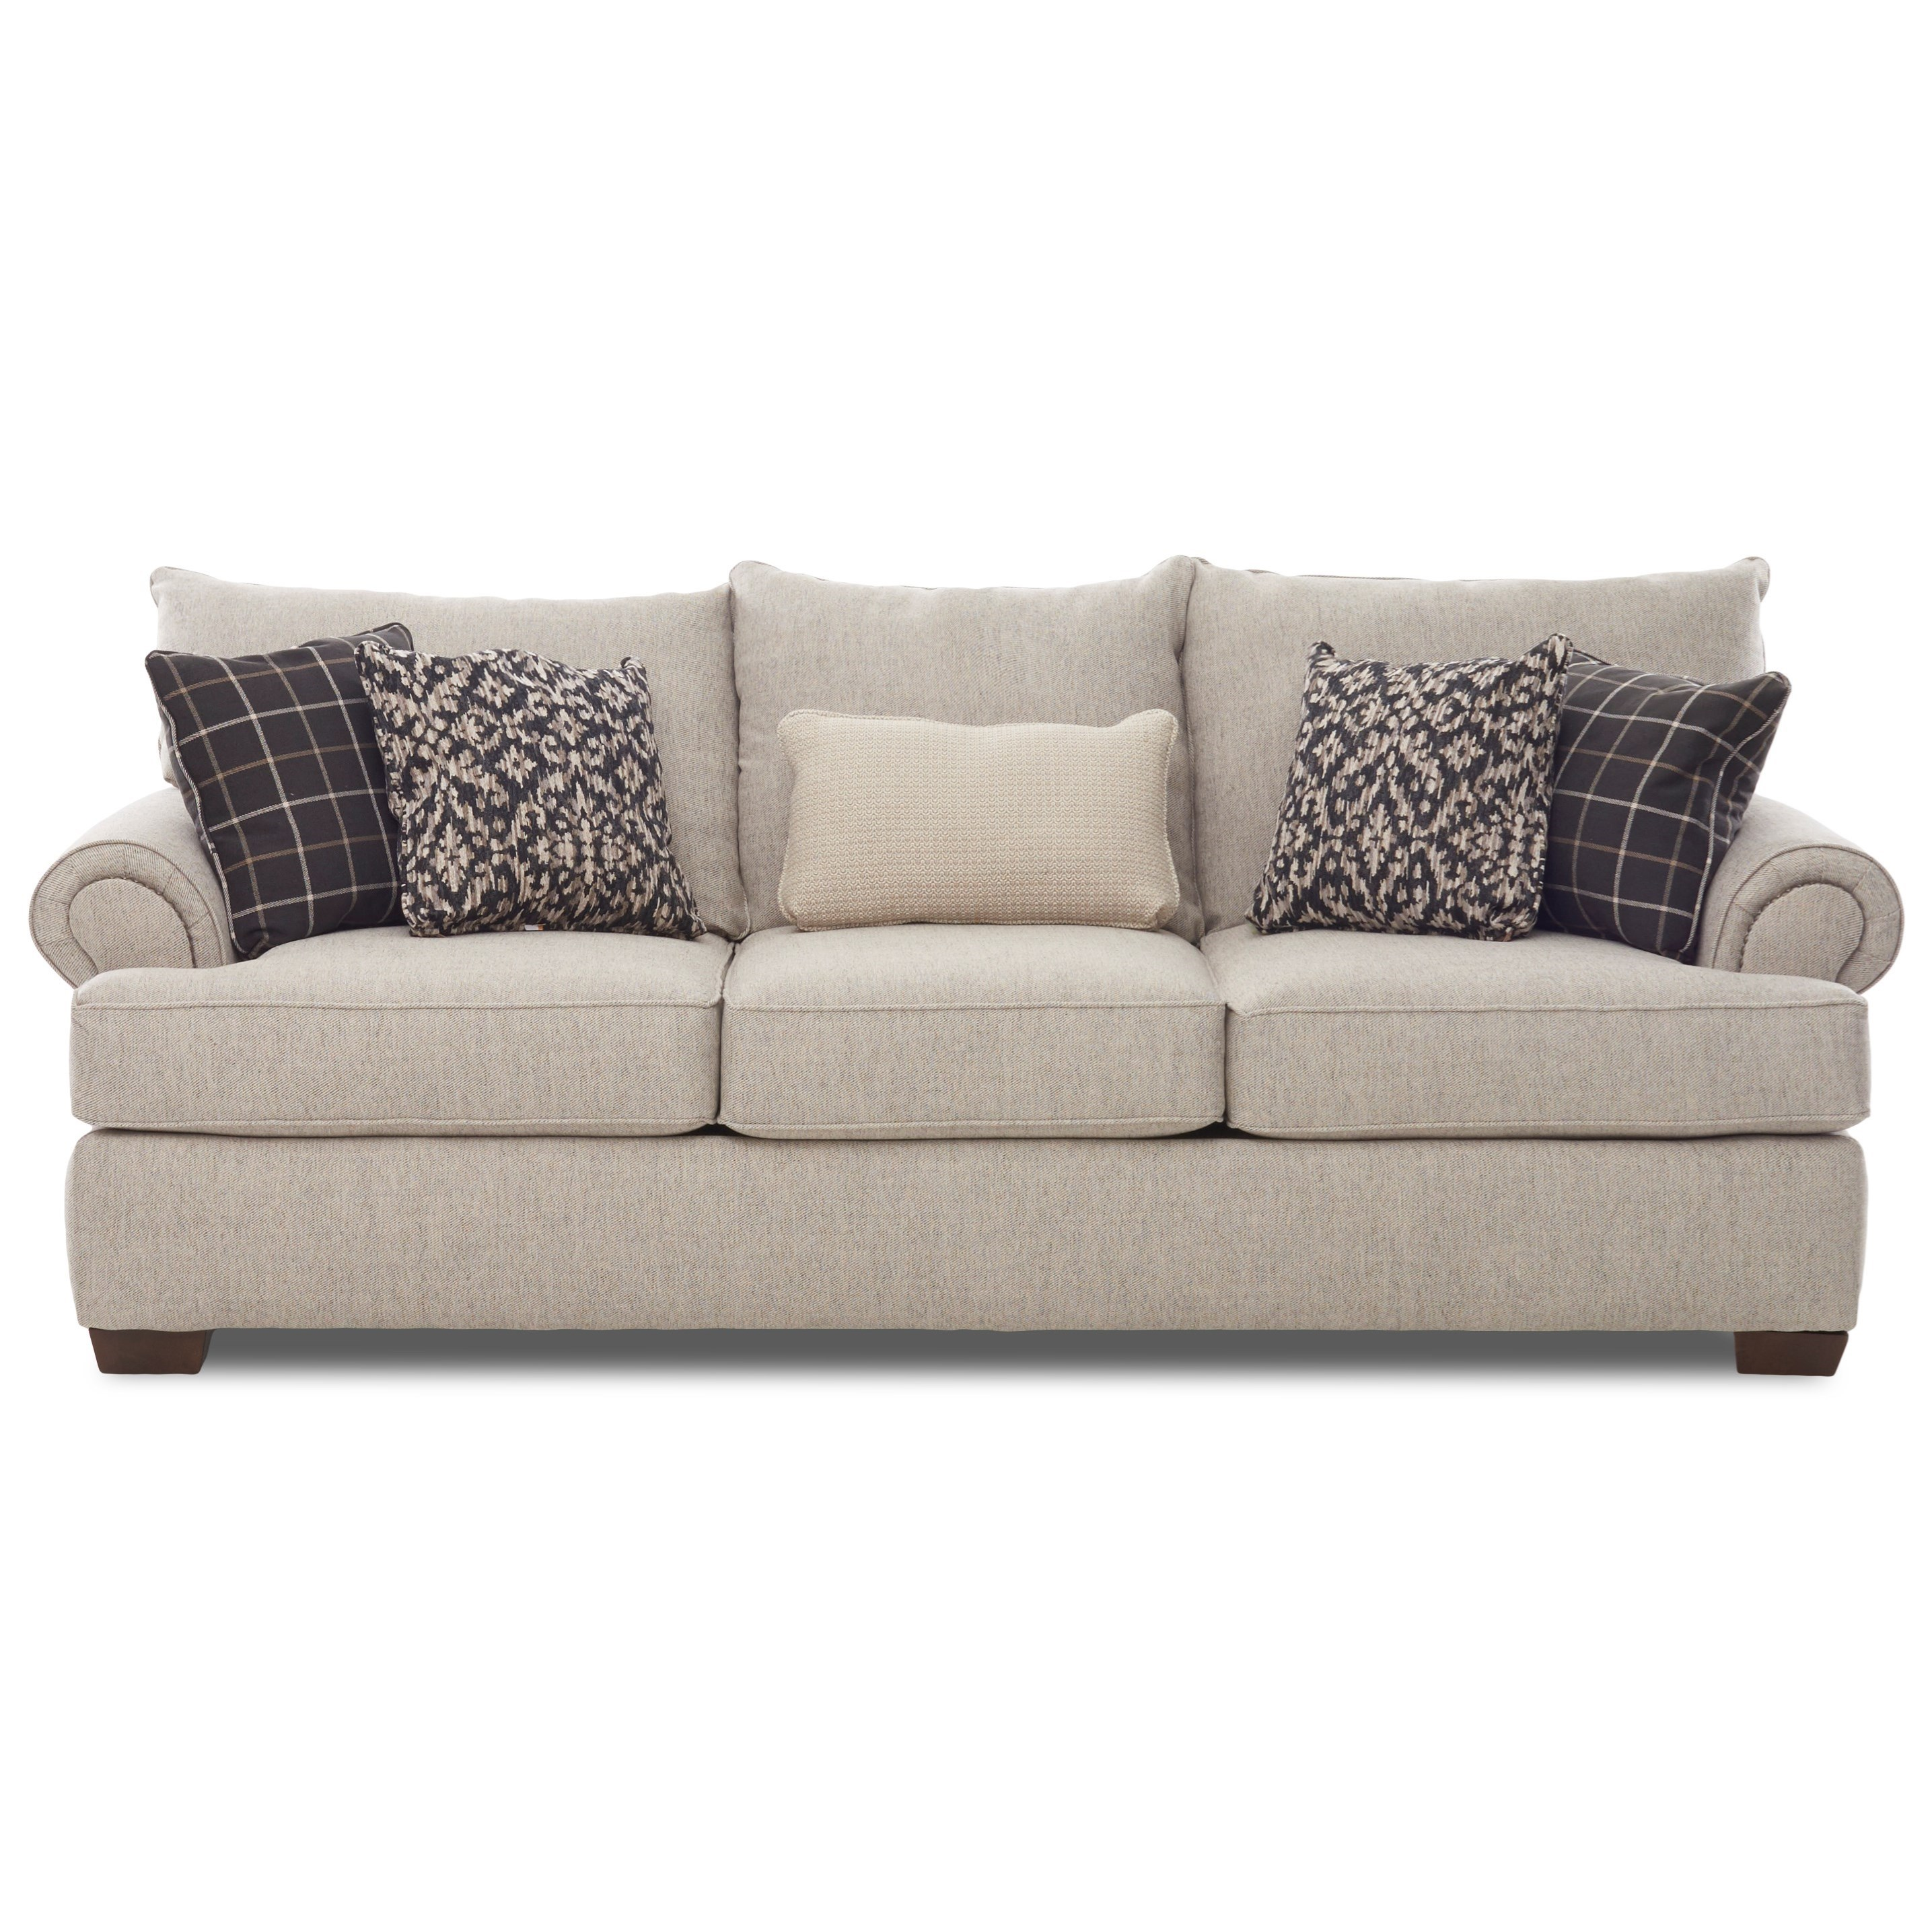 Ginger Sofa by Klaussner at Northeast Factory Direct